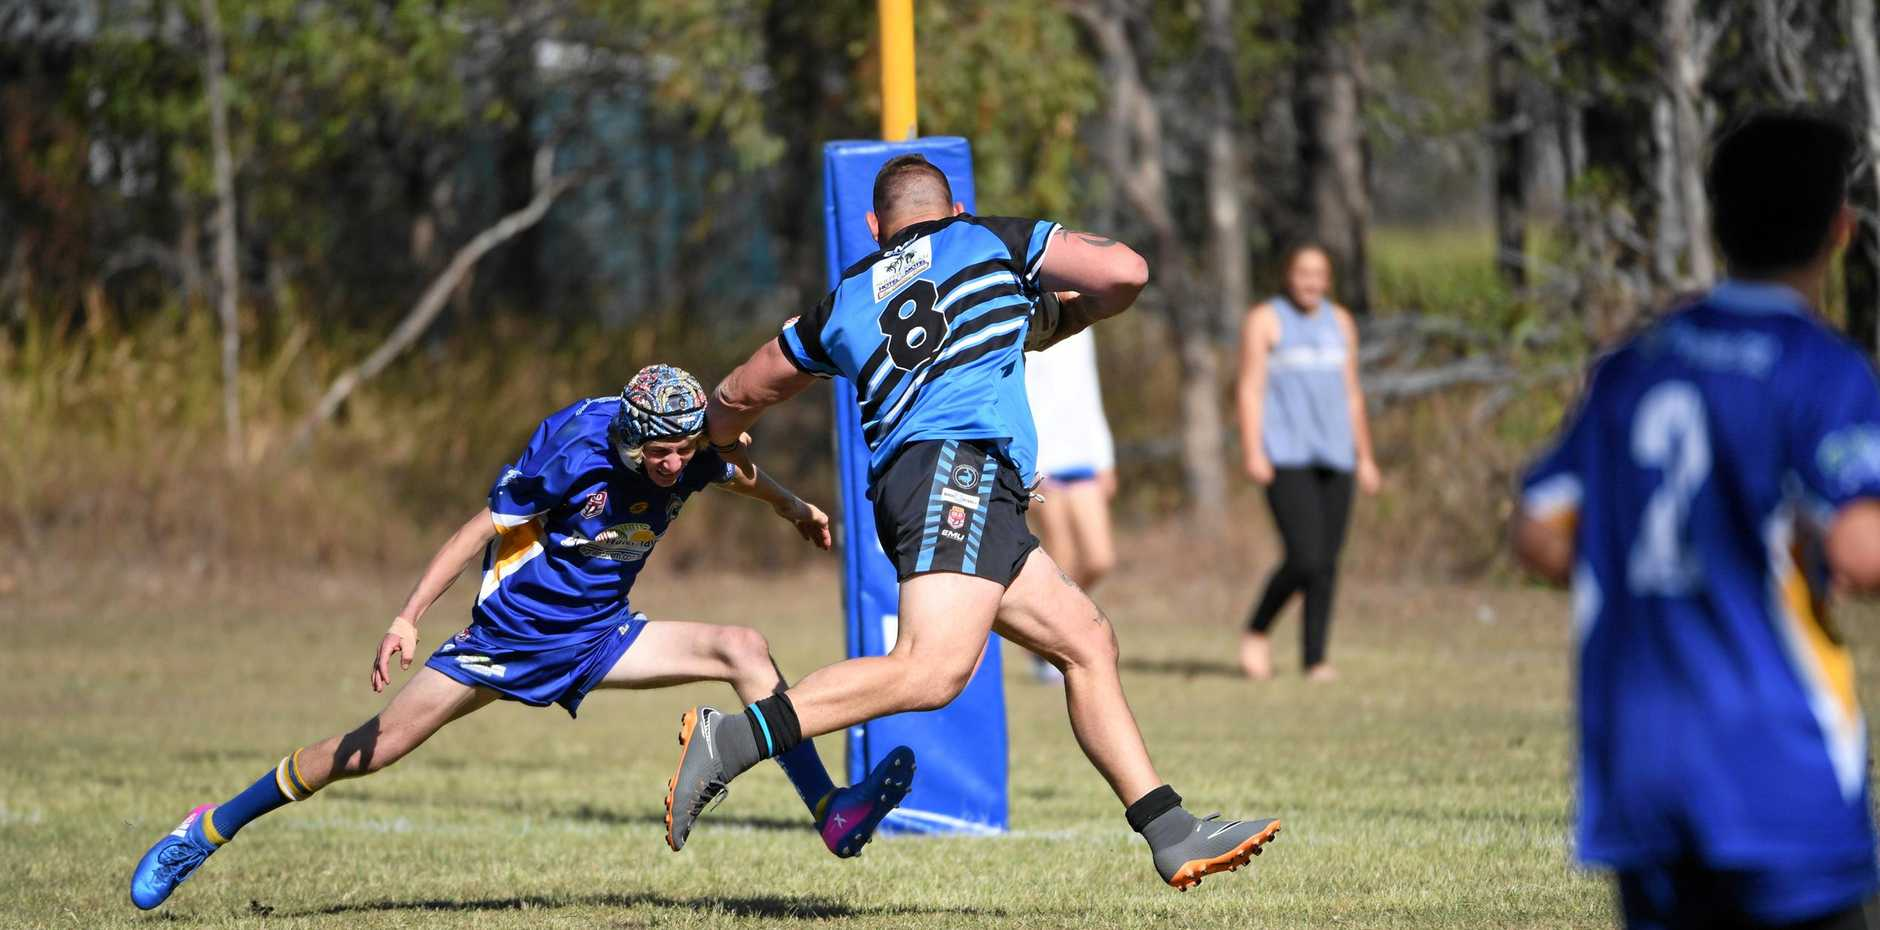 FEND: South Kolan's Jacob Olive gets away from a tackle from Agnes Water's Codie Carmichael. The Marlins are in doubt to play next year in the NDRL.